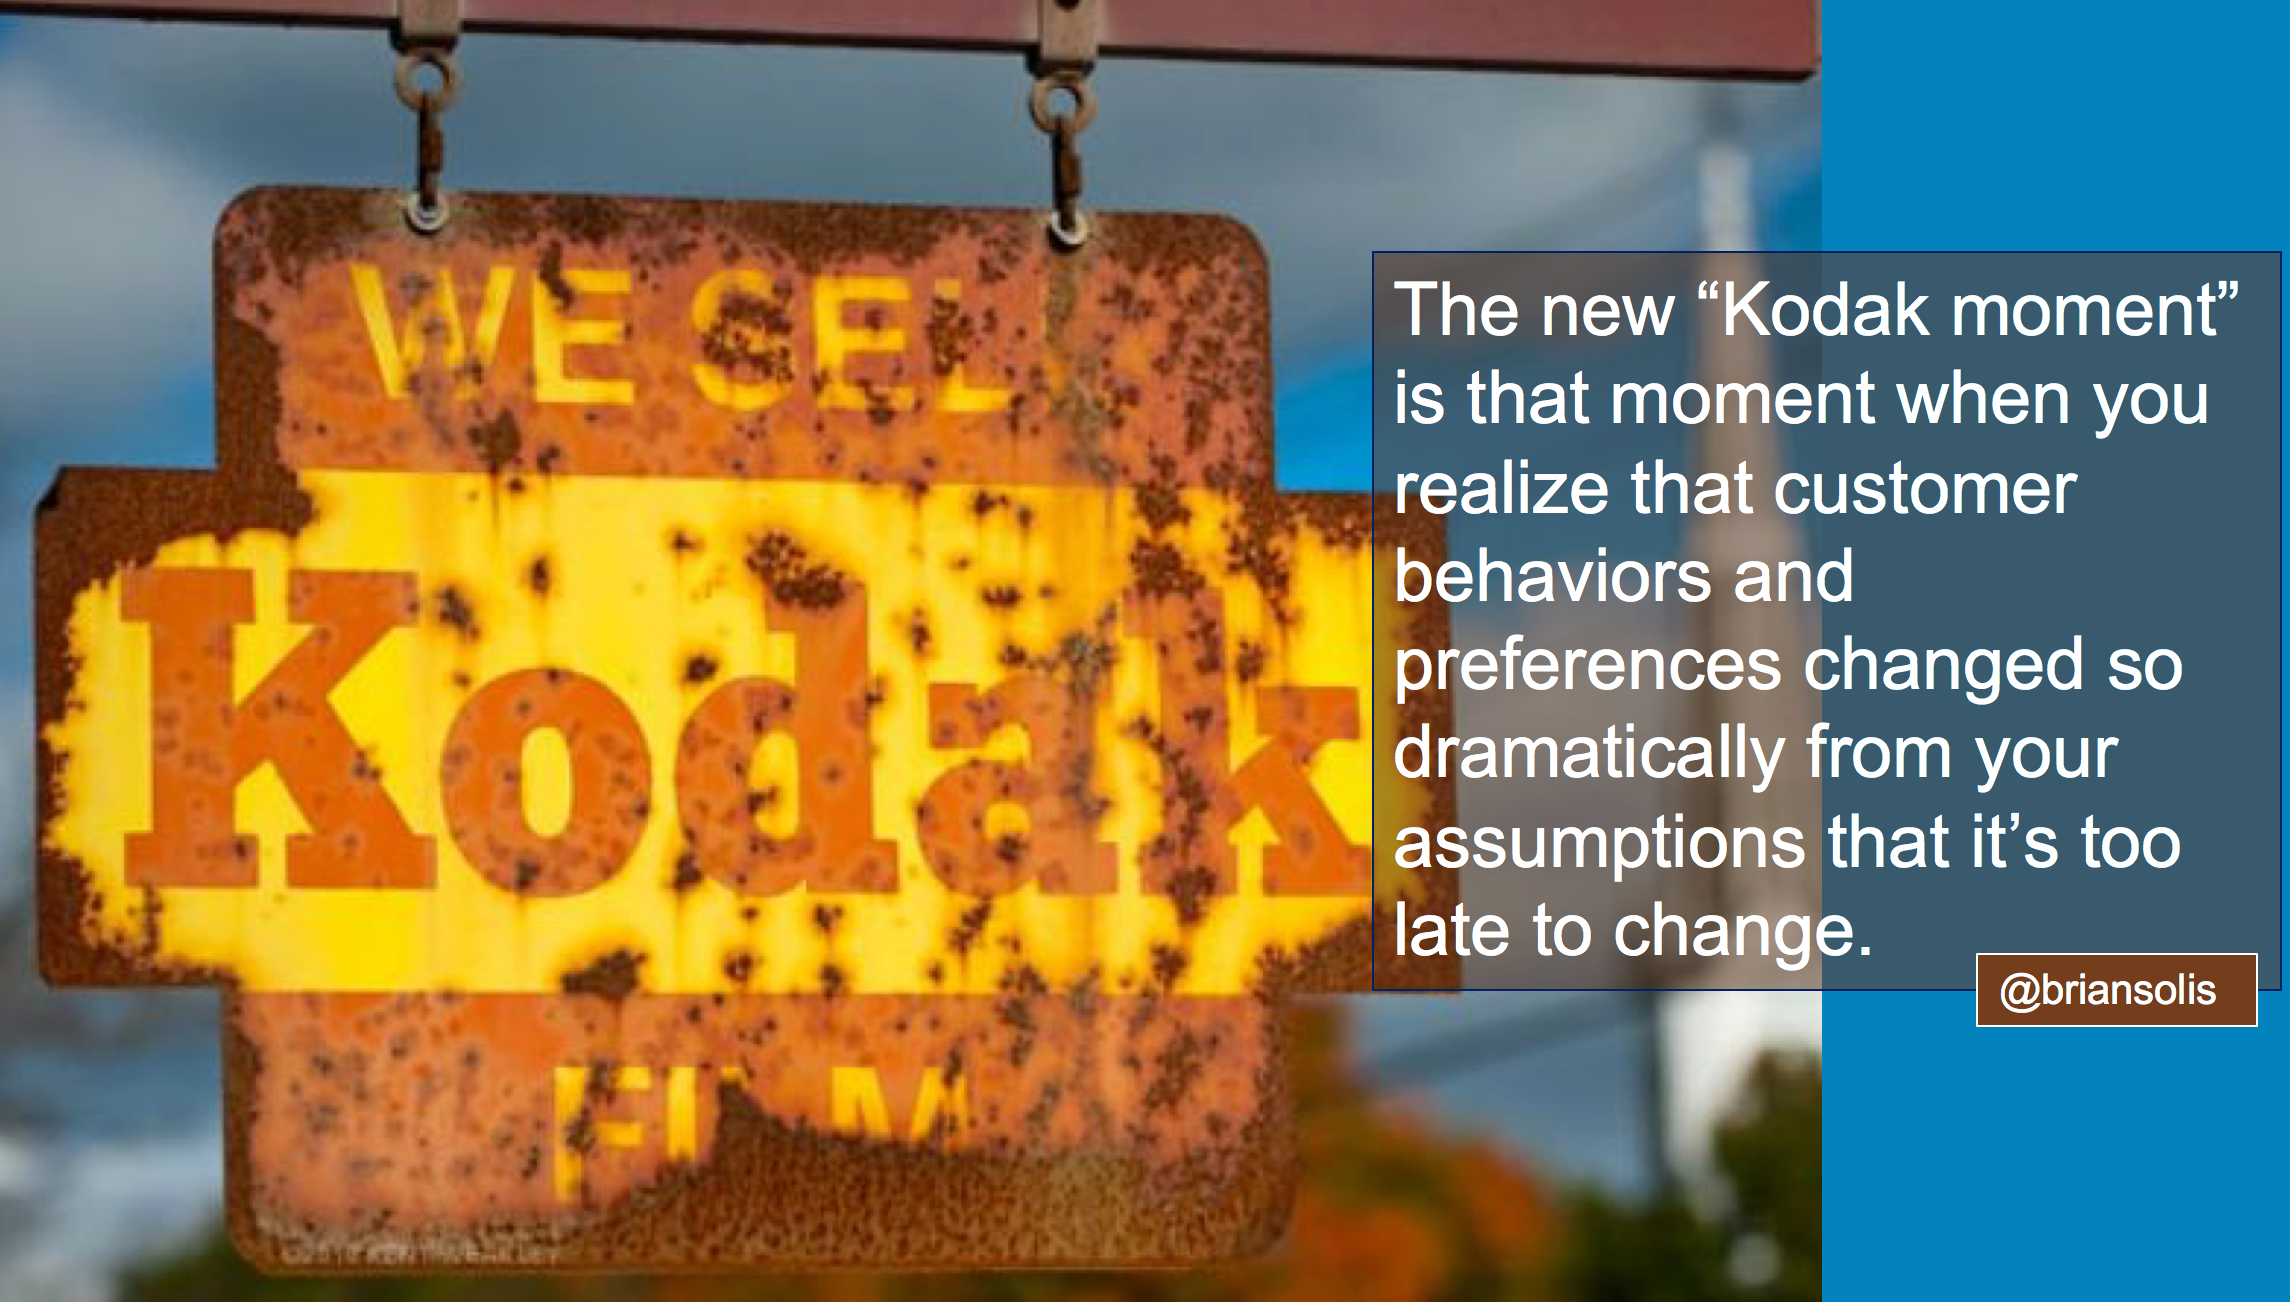 the new kodak moment that moment when you lose market relevance